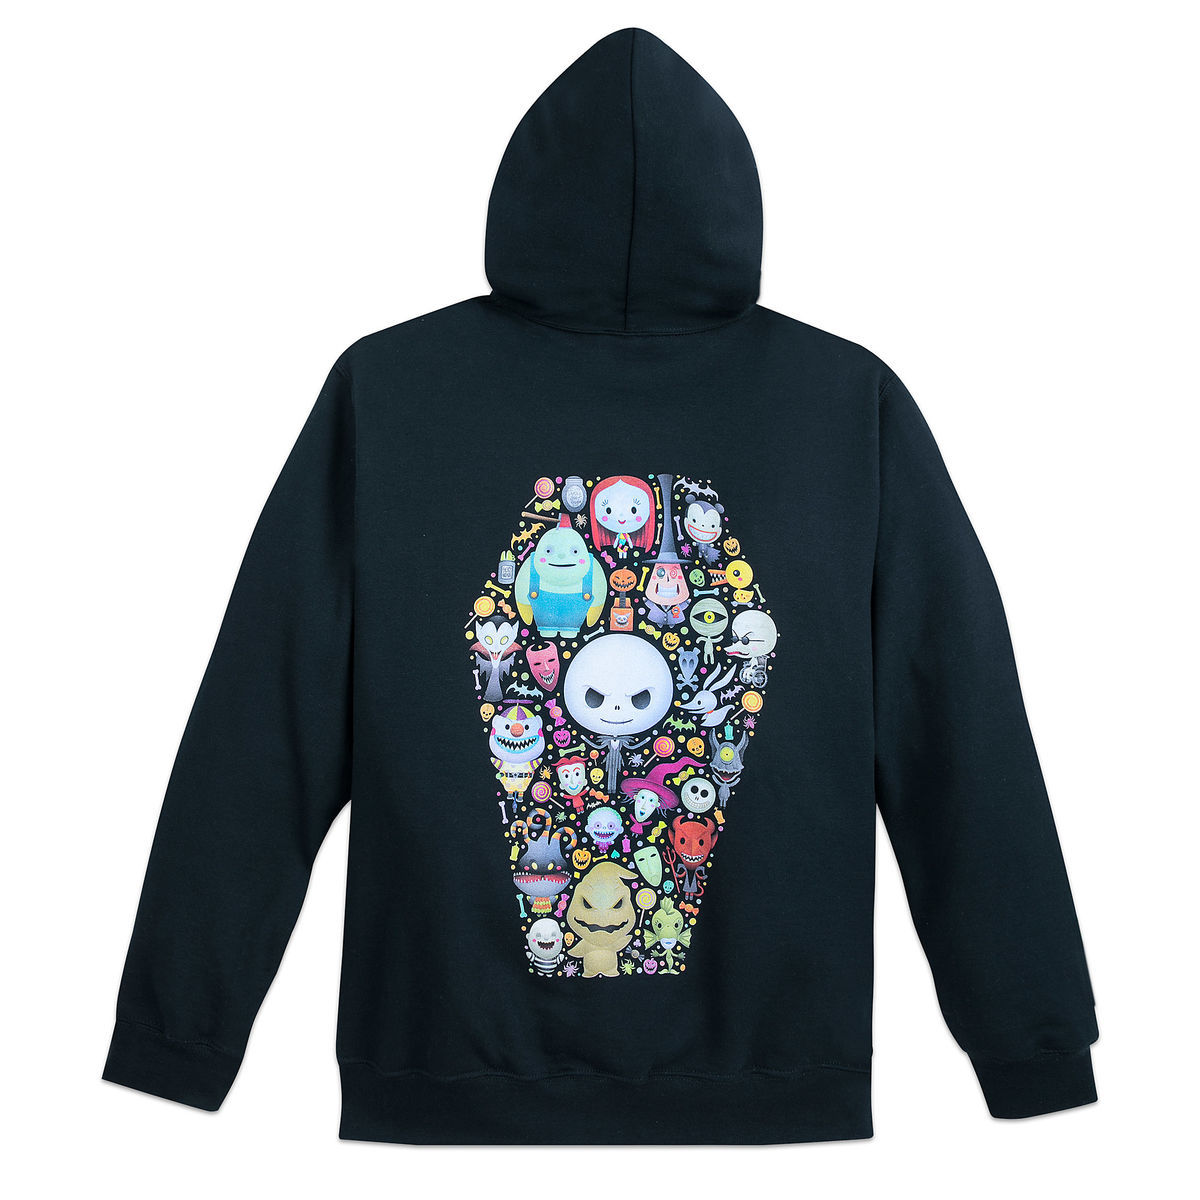 The Nightmare Before Christmas Zip Hoodie for Adults by by Jerrod ...